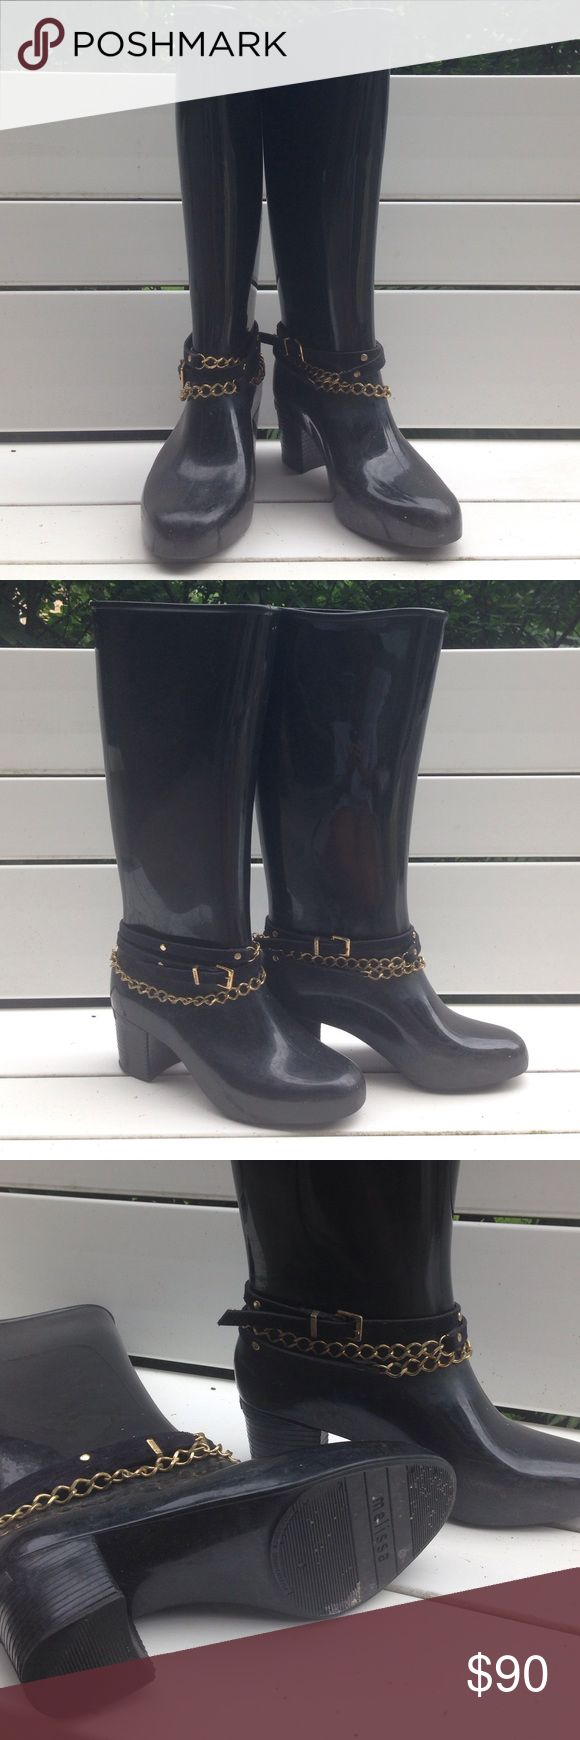 MELISSA black tall rain boots w/ heel + ankle wrap All black tall rain boots hardly worn, 100% rubber and waterproof! They are comfortable and a beautiful classic boot my MELISSA! Bought in Brazil where the brand is from. Amazing condition and won't ruin your style when it's raining outside. Added chain and leather stud ankle wrap which is removable but why would you want to do that? :) melissa Shoes Winter & Rain Boots